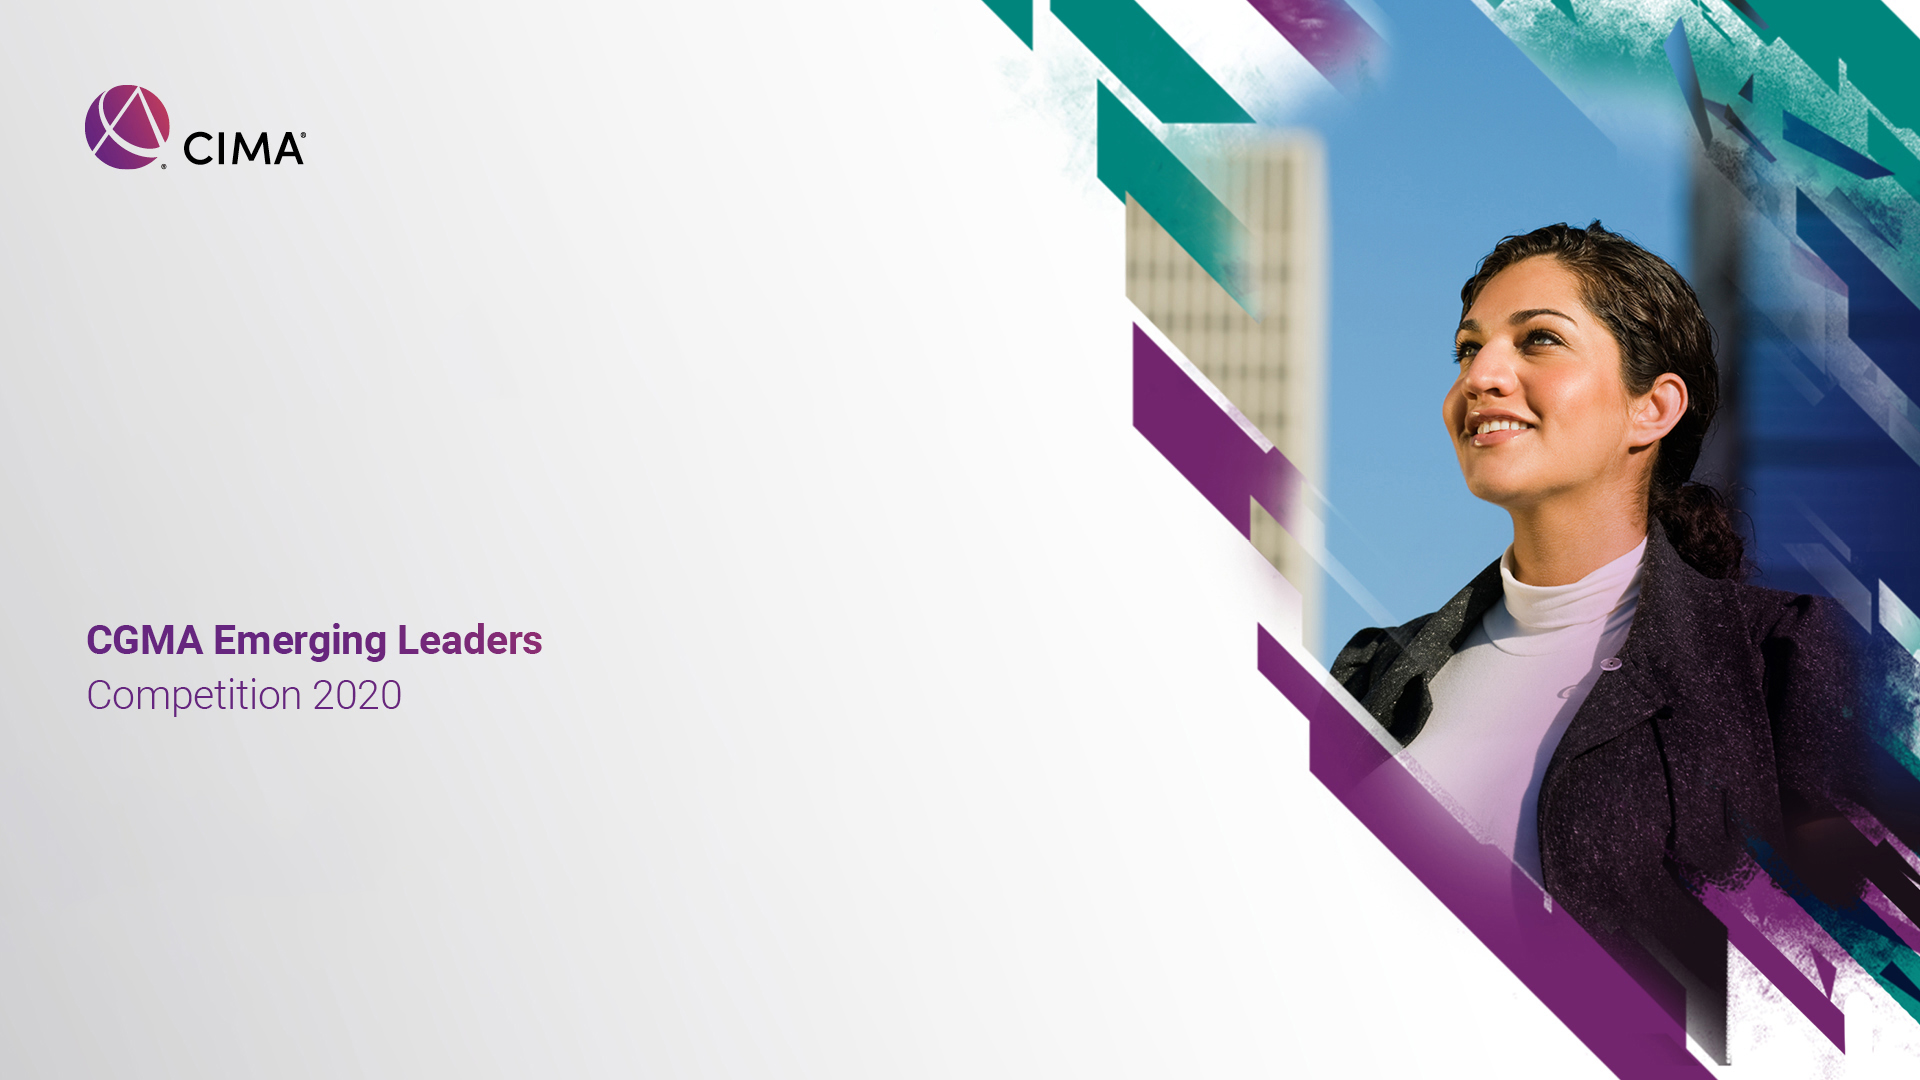 Konkurs CGMA Emerging Leaders Competition 2020